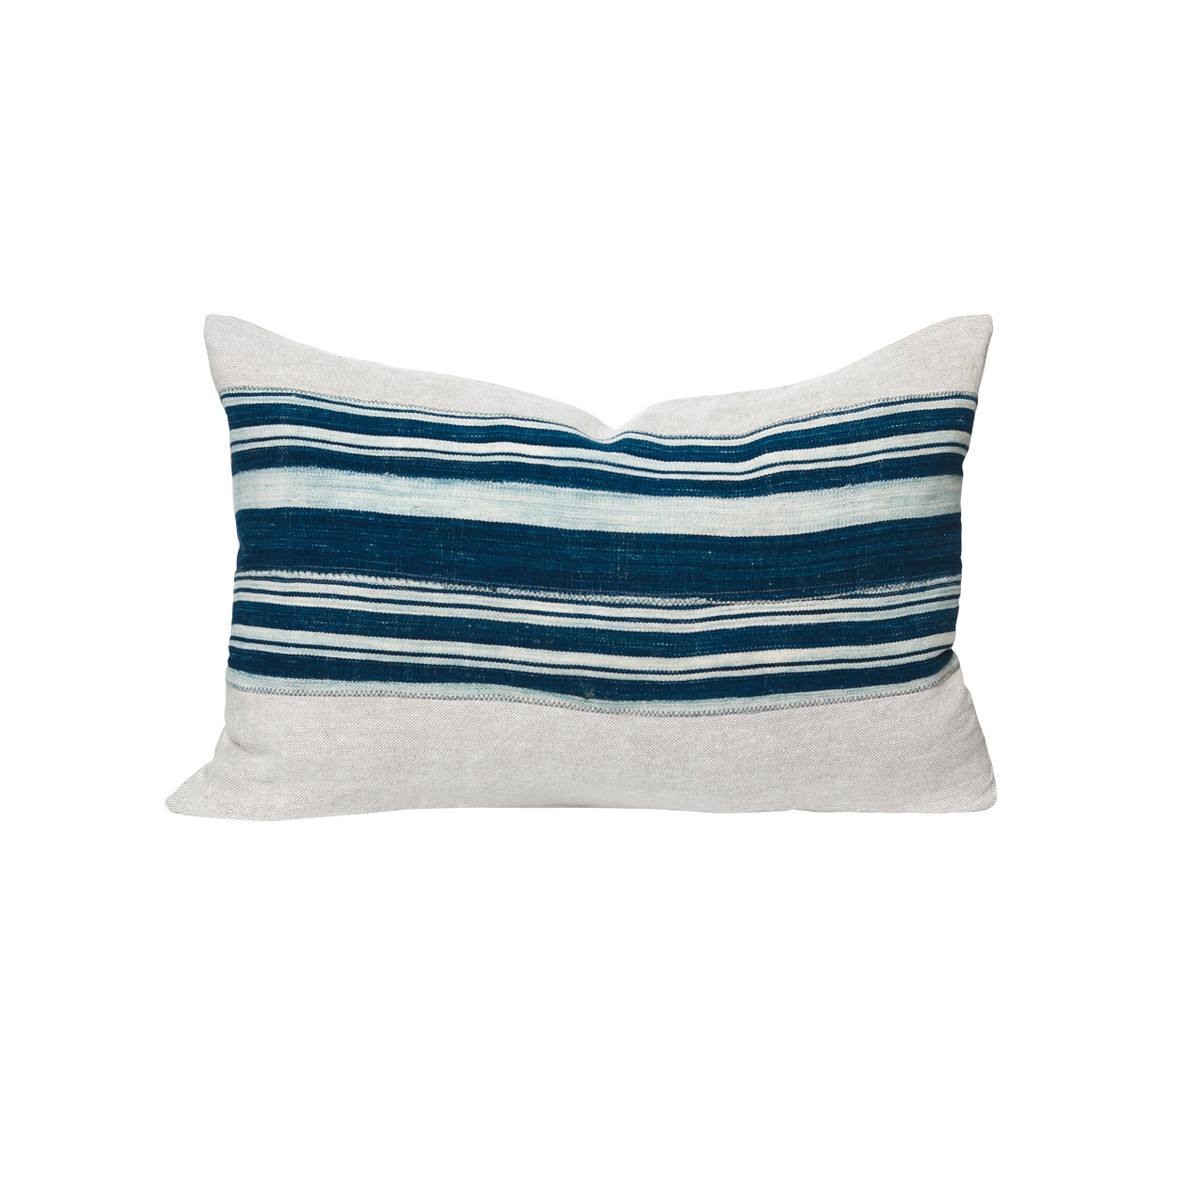 Olyn African Indigo Striped Pillow - Front